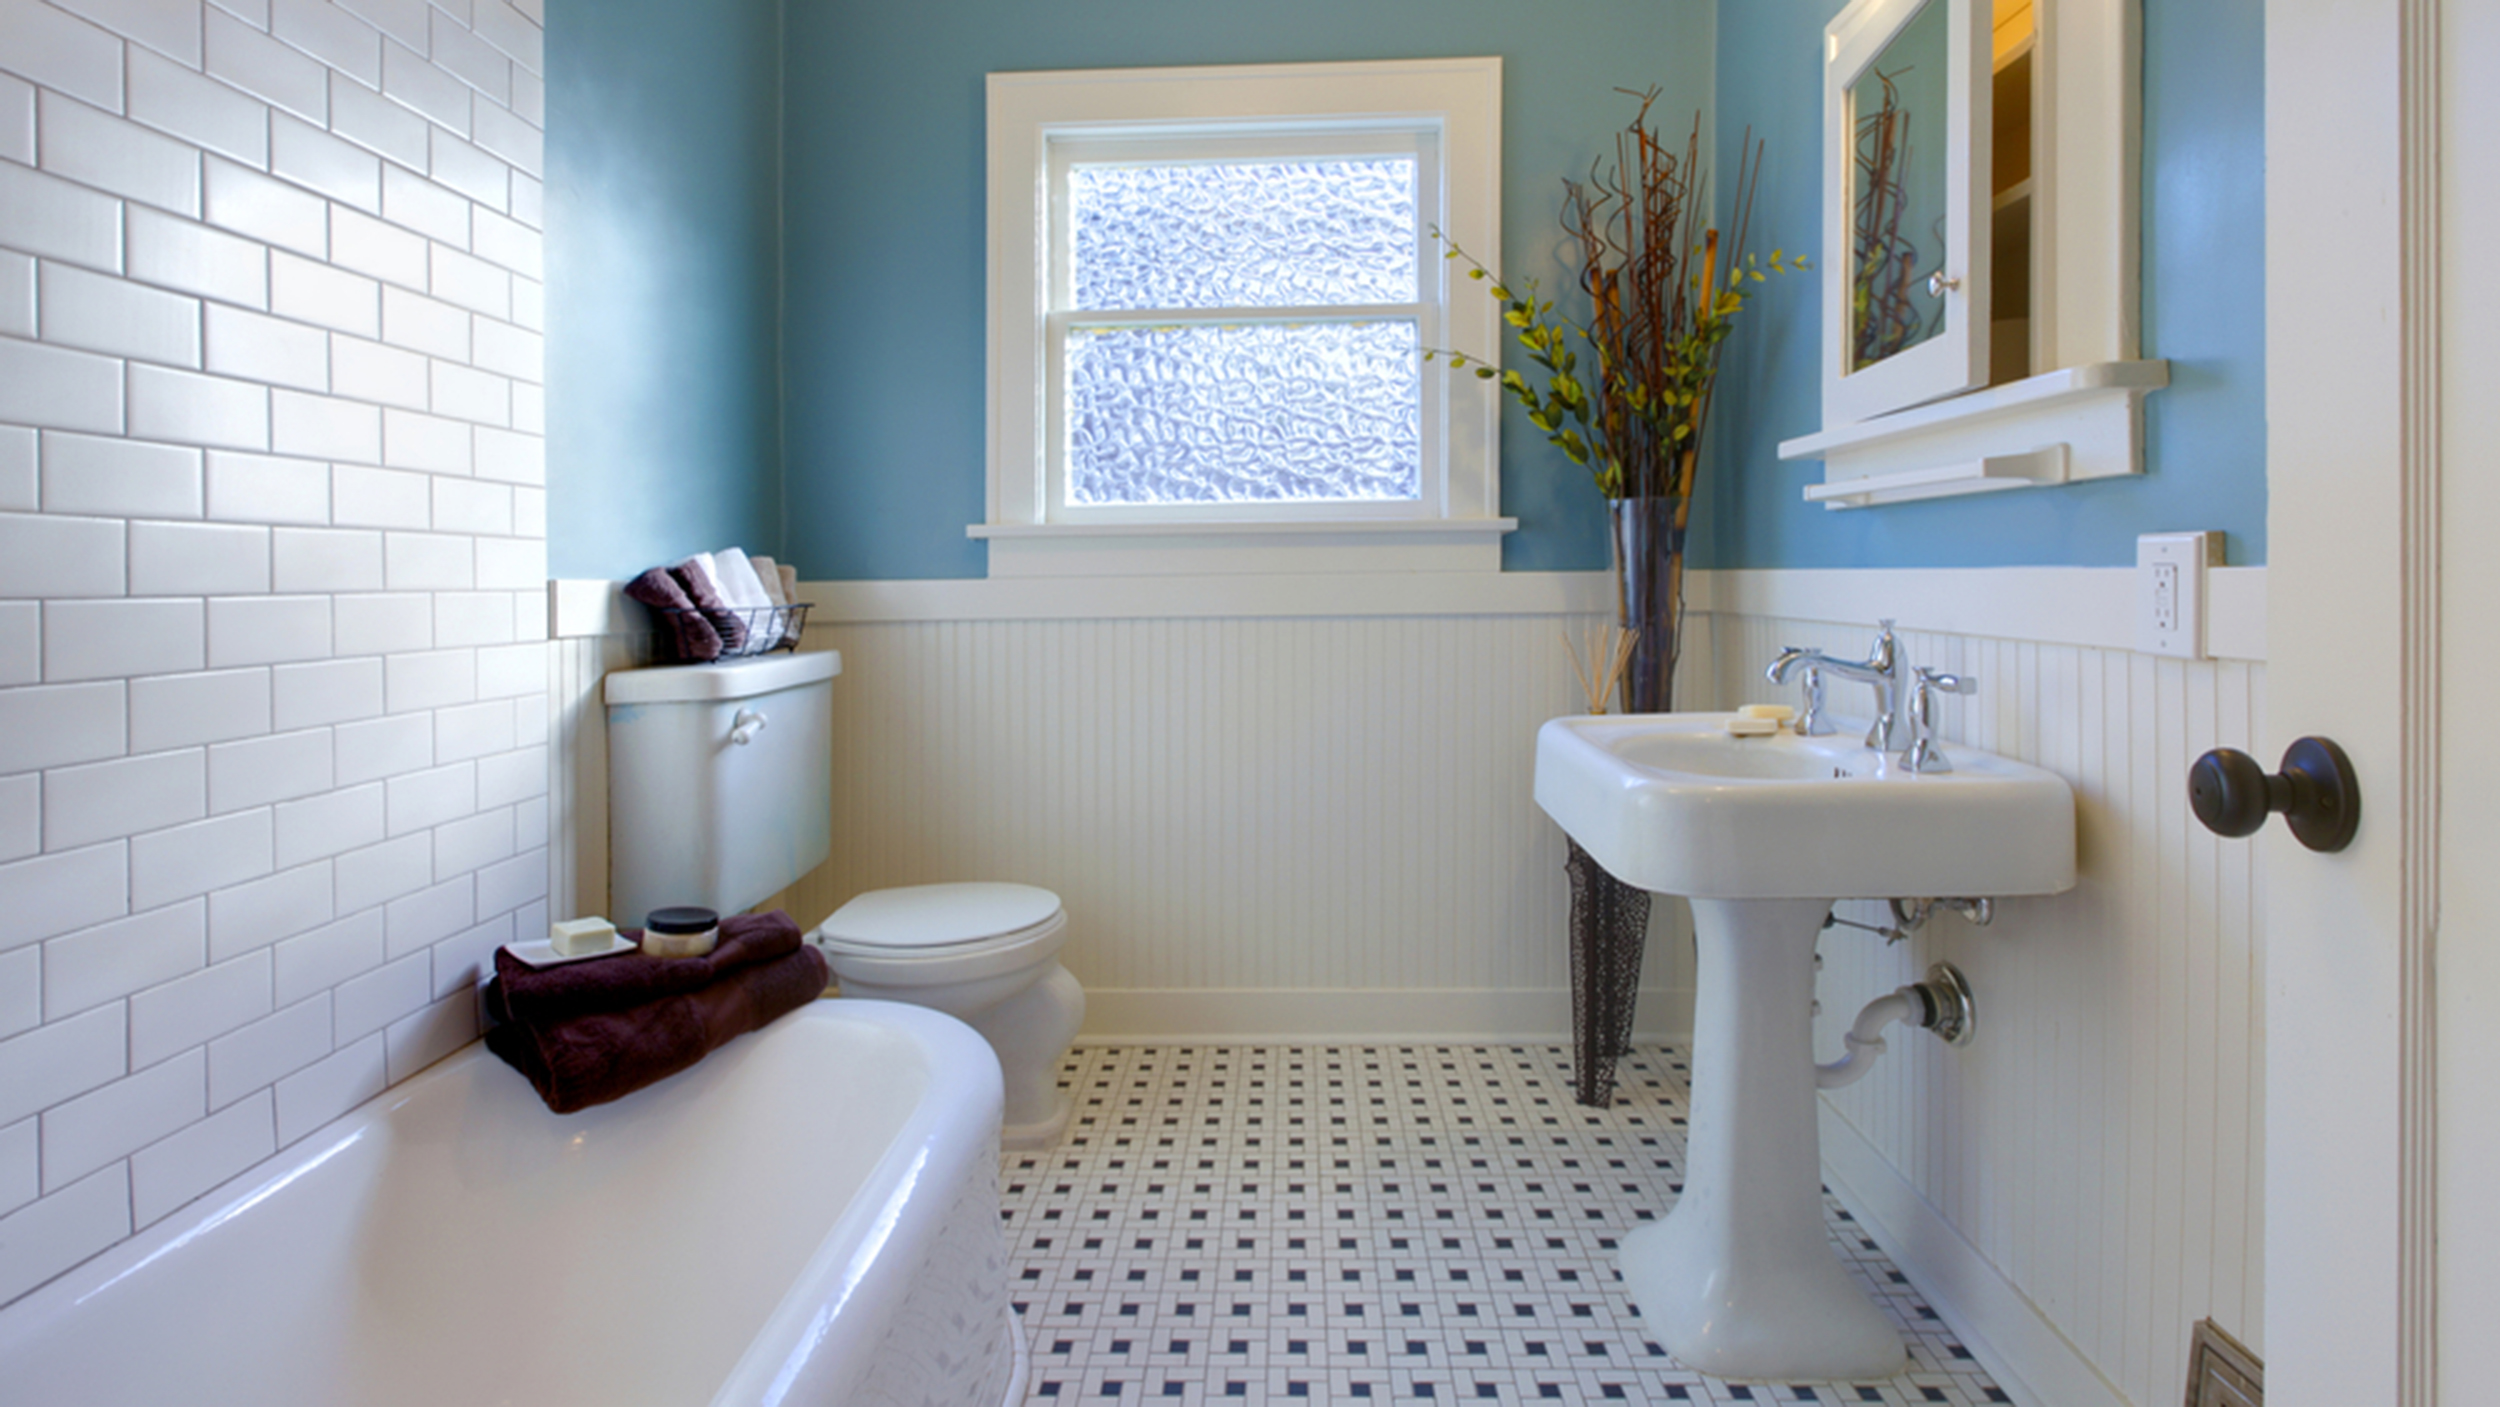 Bathroom tile remodel ideas